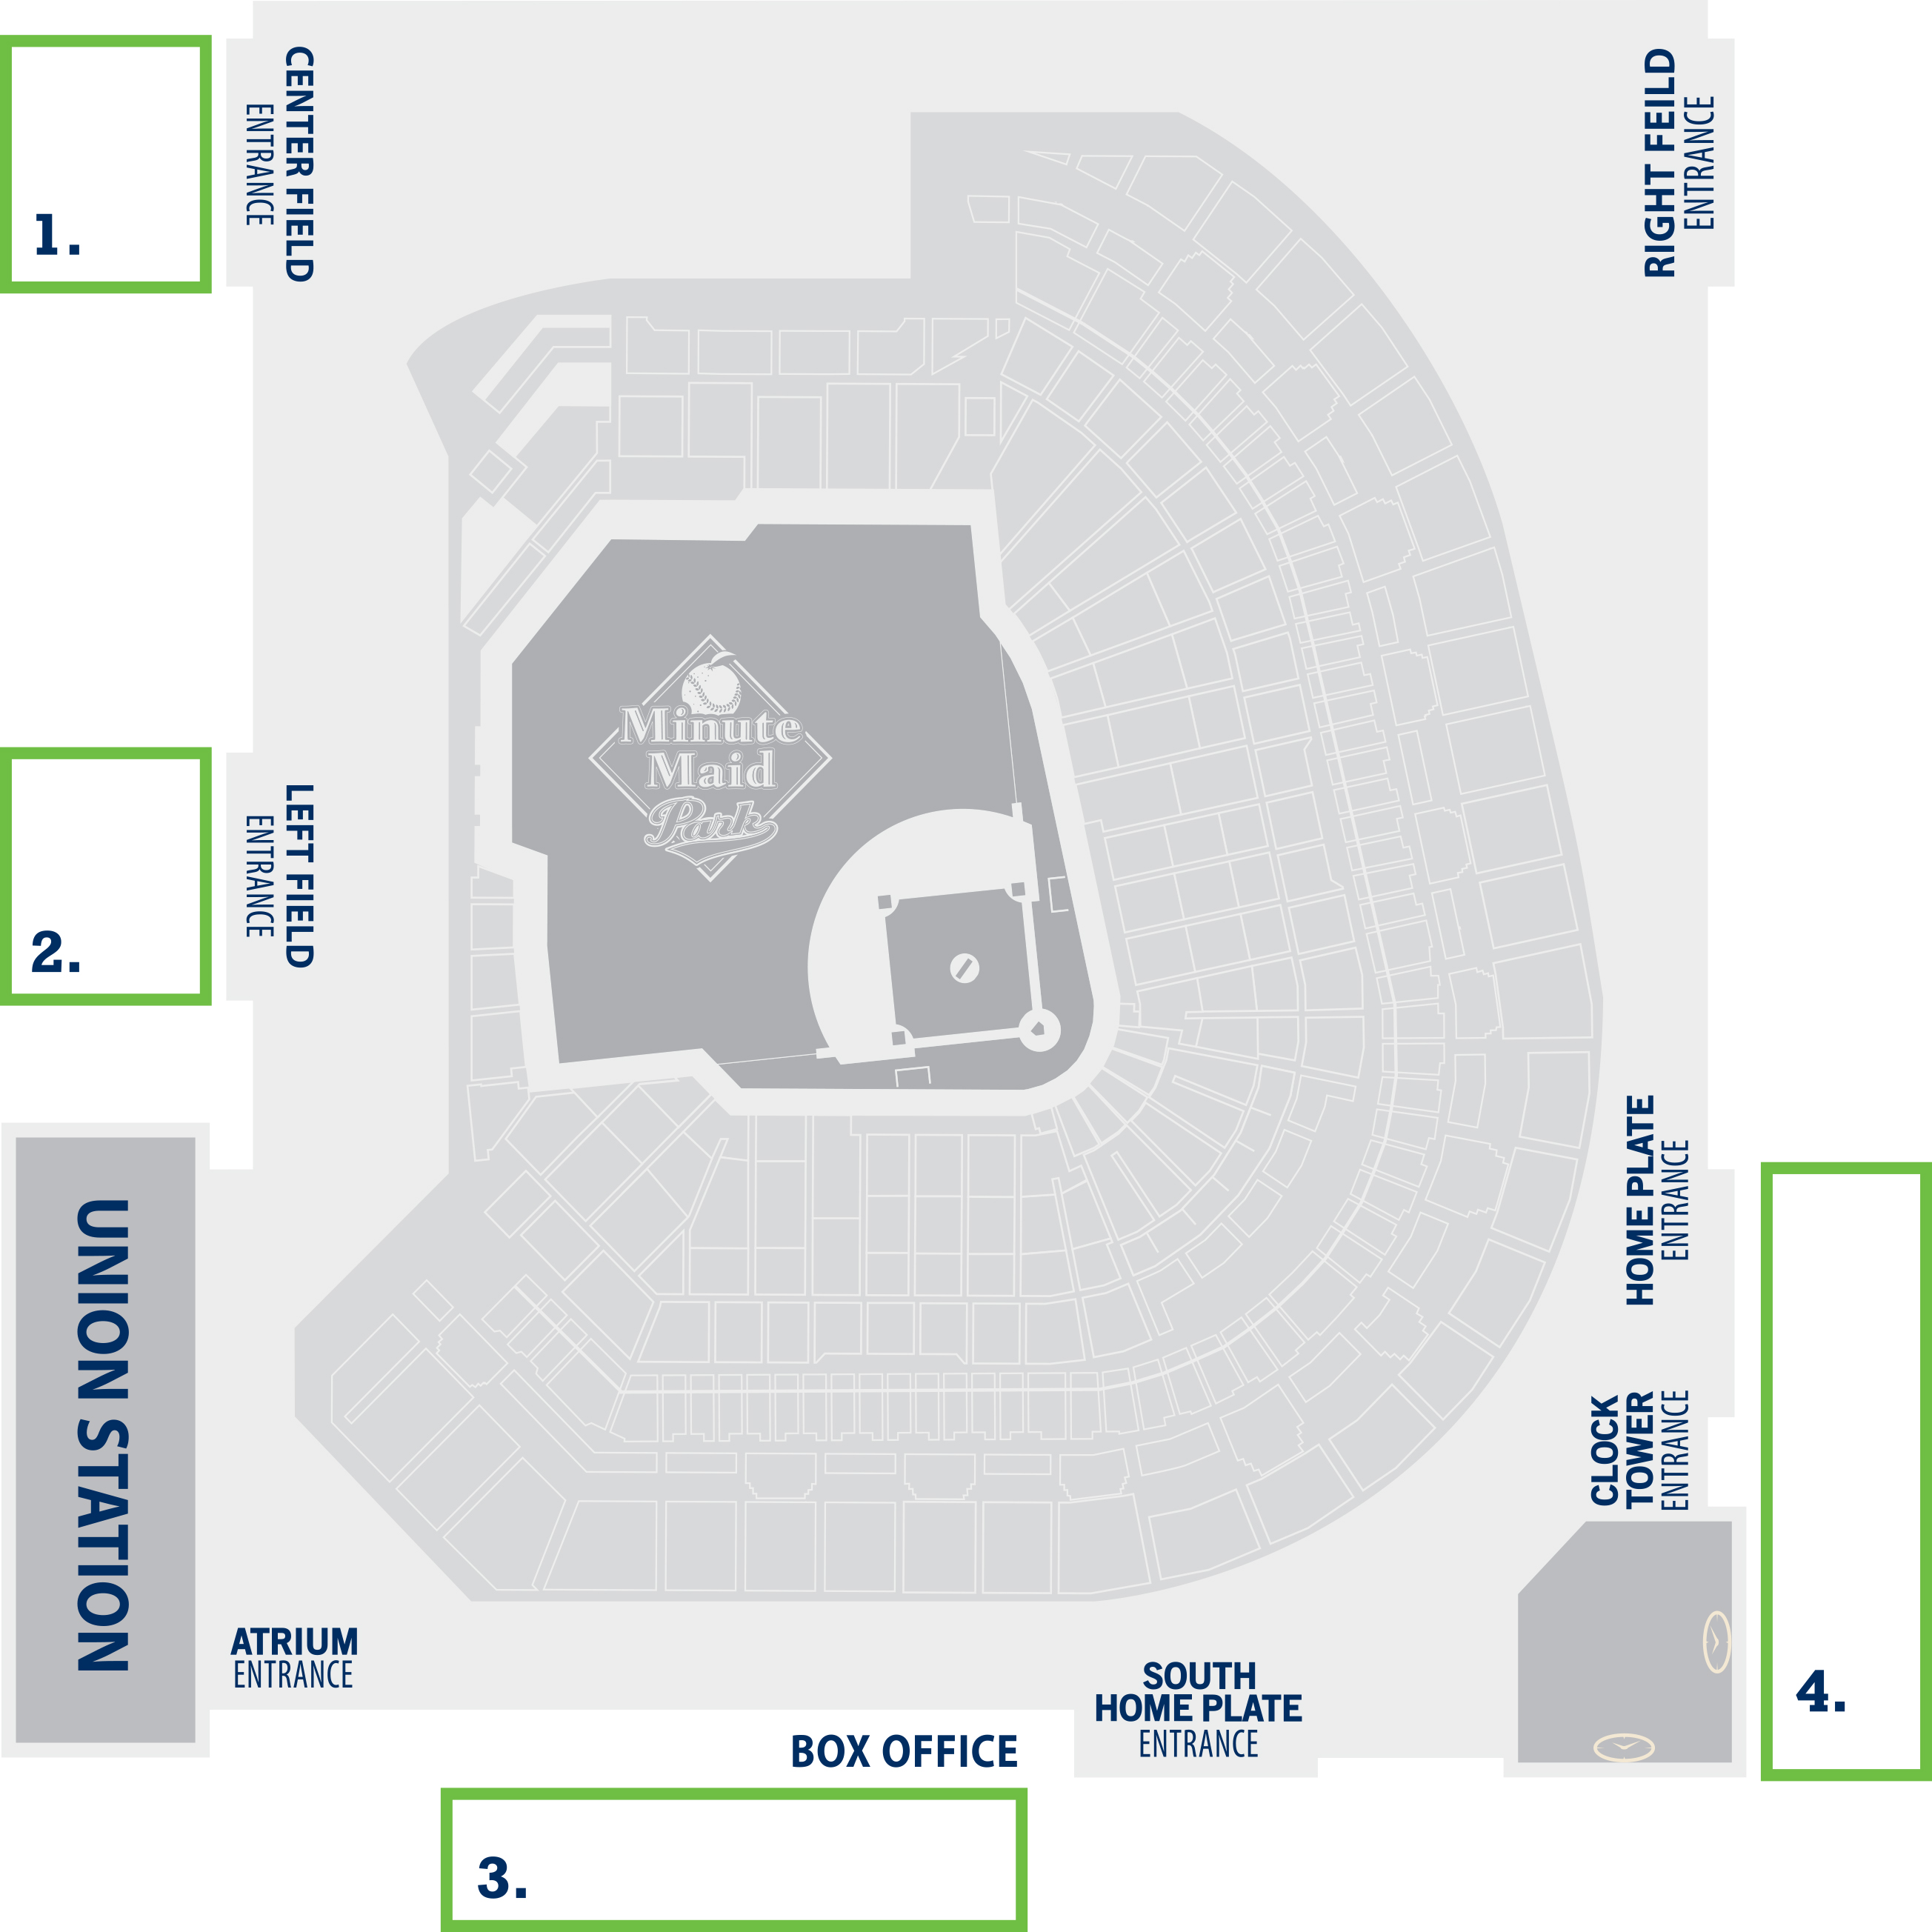 Map for Minute Maid Park Brick Locator